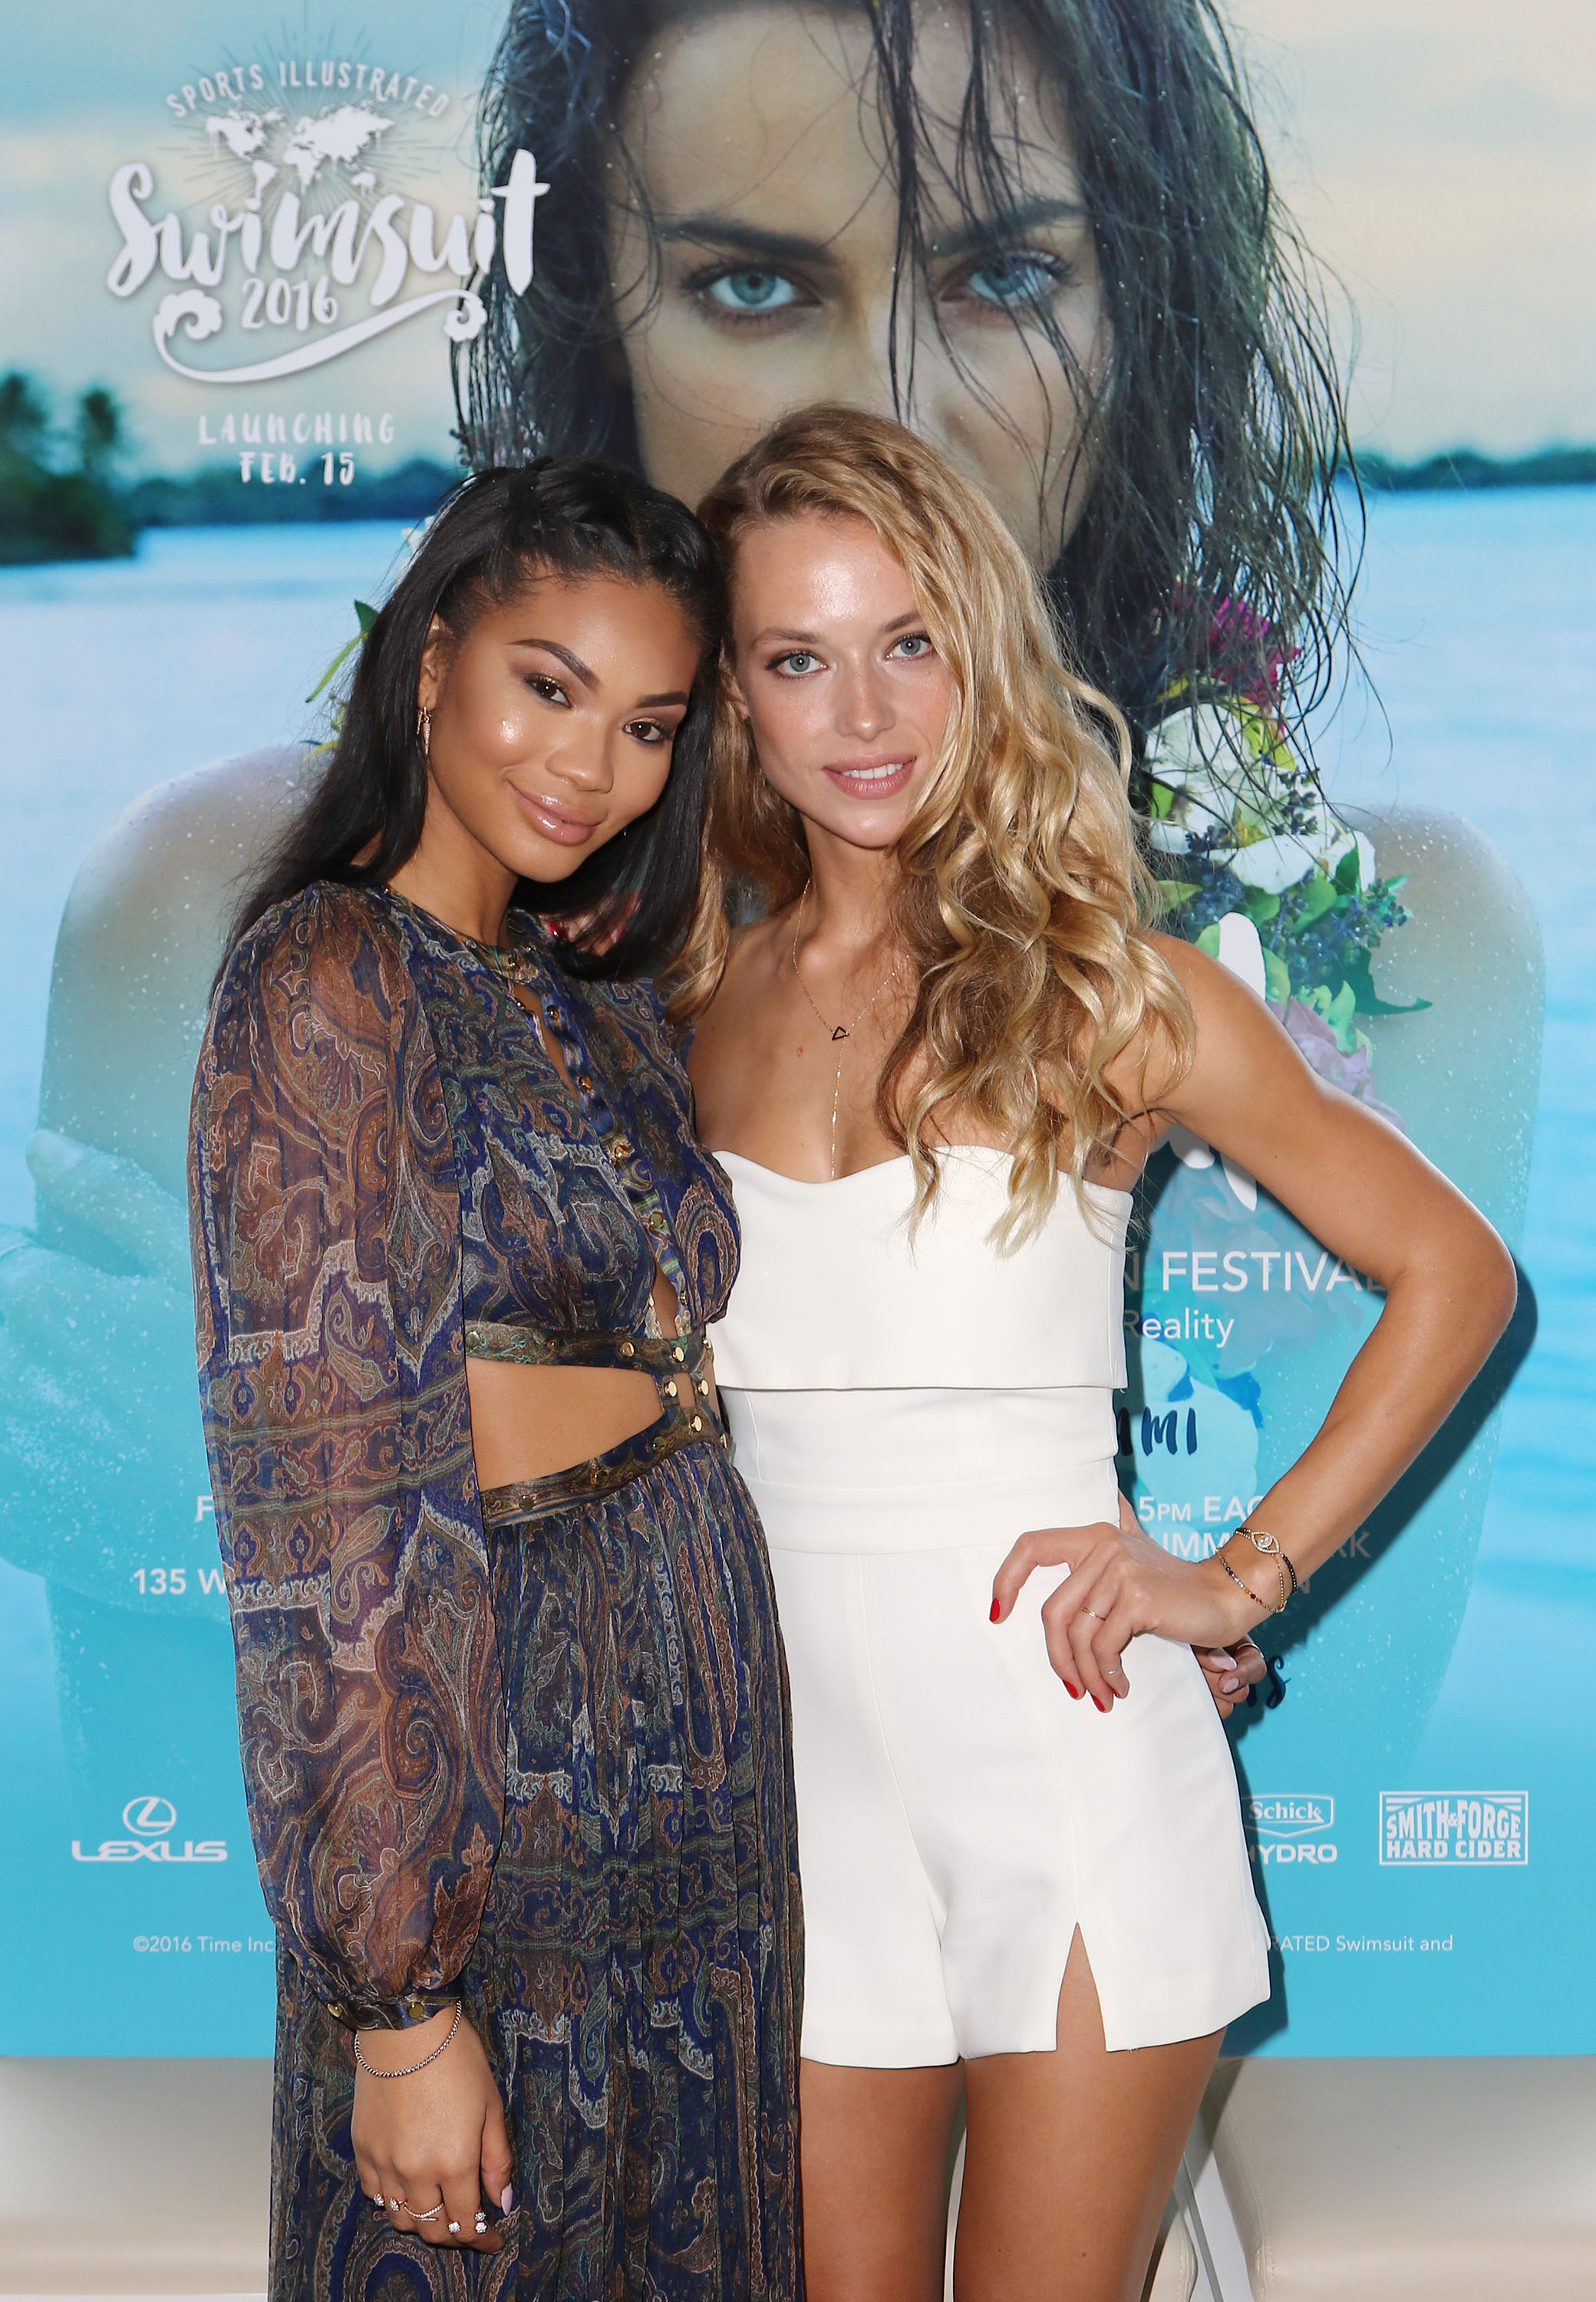 Sports Illustrated Swimsuit Models Hannah Ferguson and Chanel Iman reveal SI Swimsuit 2016 launch week events in Miami at 1 Hotel & Homes South Beach.Photo Credit: Alexander Tamargo/Getty Images for Sports Illustrated